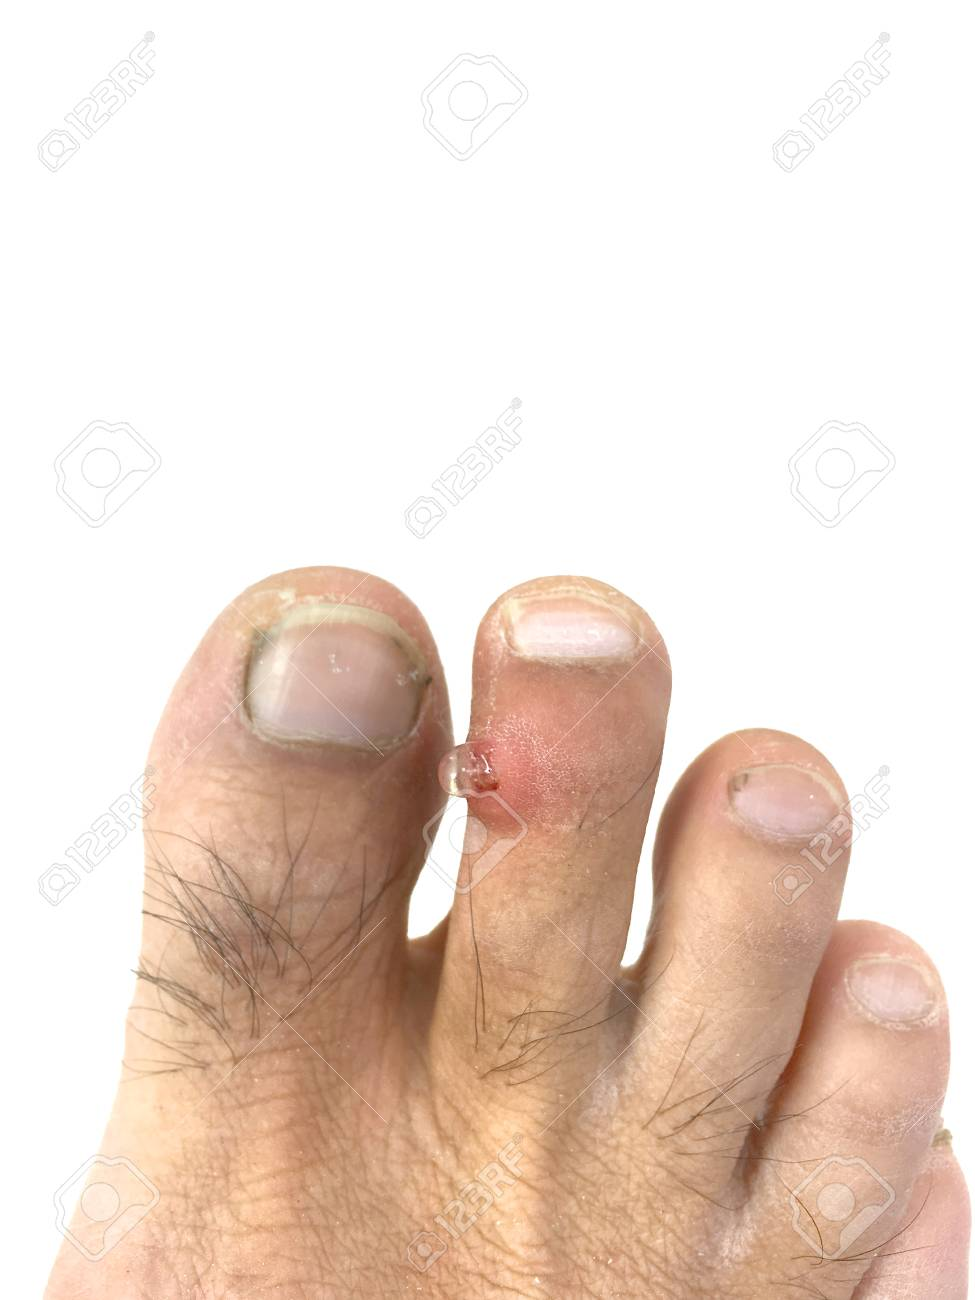 Inflammation, Infection And Pus On The Toe. Stock Photo, Picture And ...